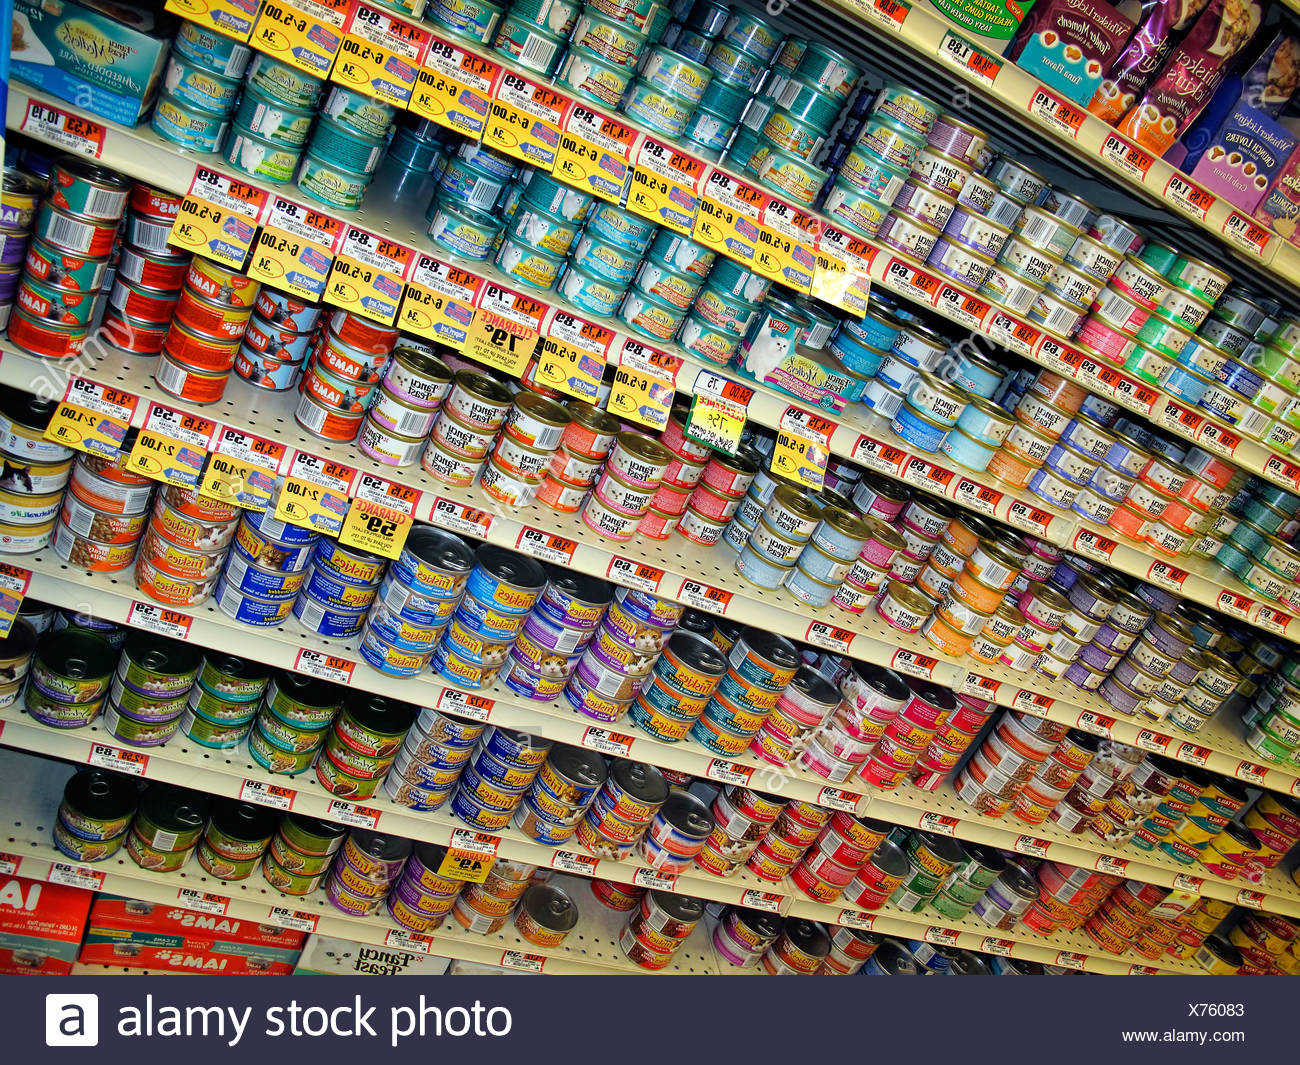 Variety of canned cat food products on a store shelf. - Stock Image